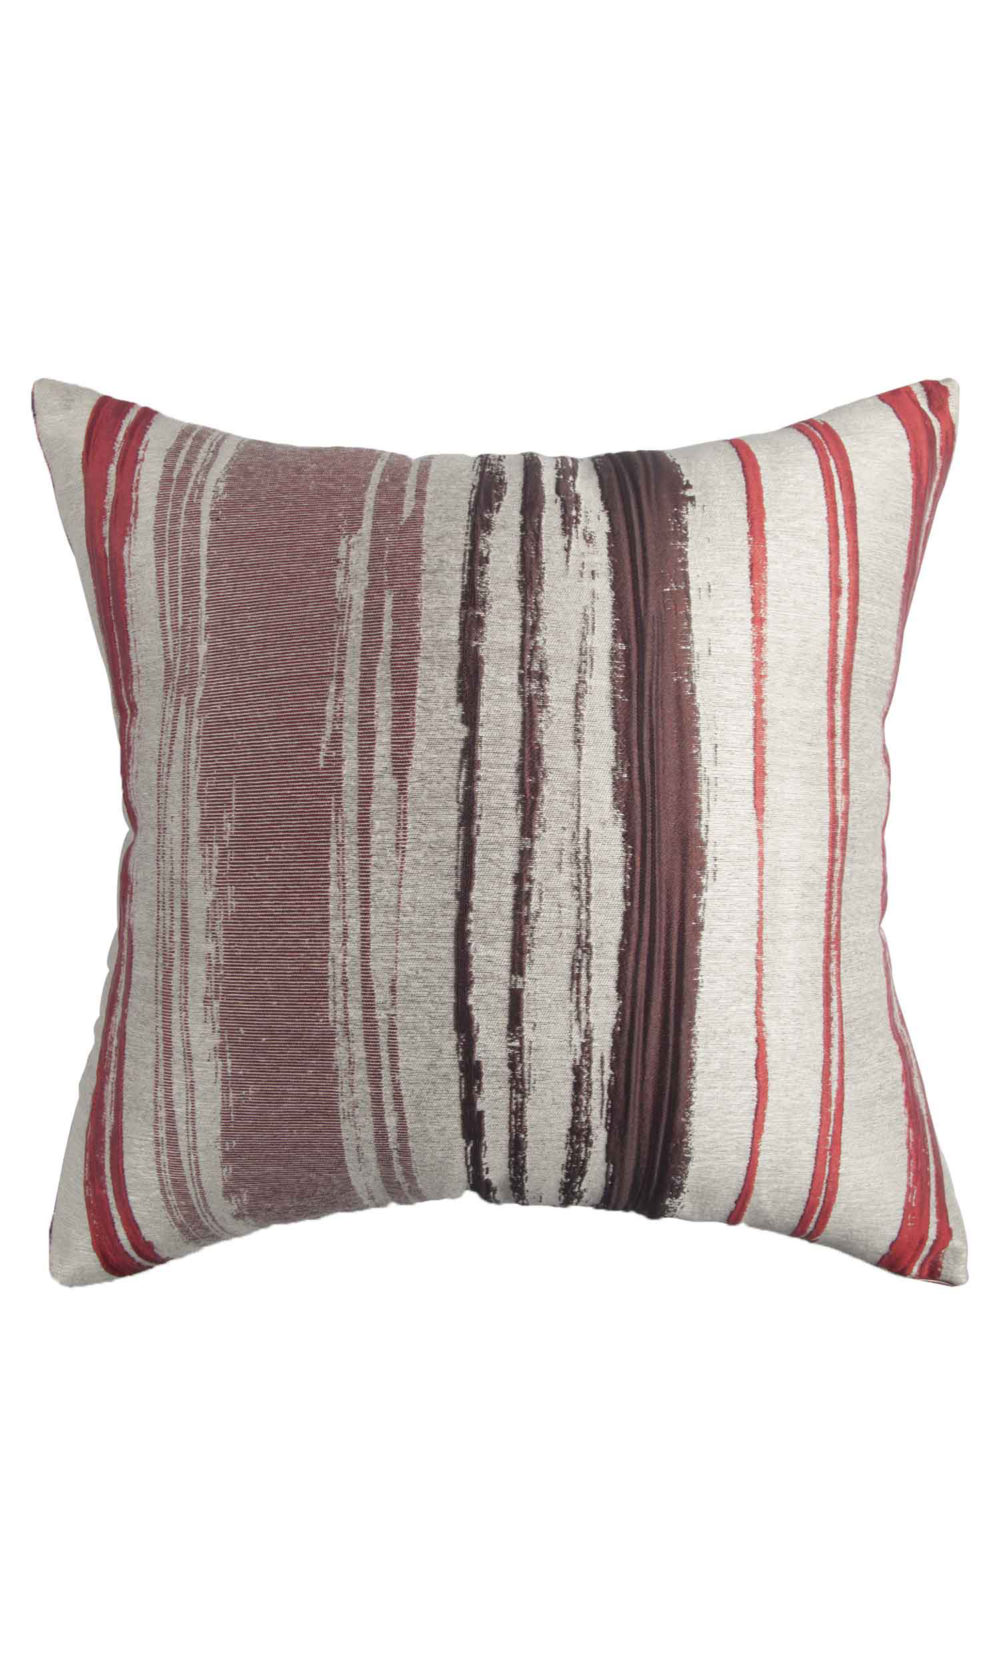 Striped Affordable Cushion Cover